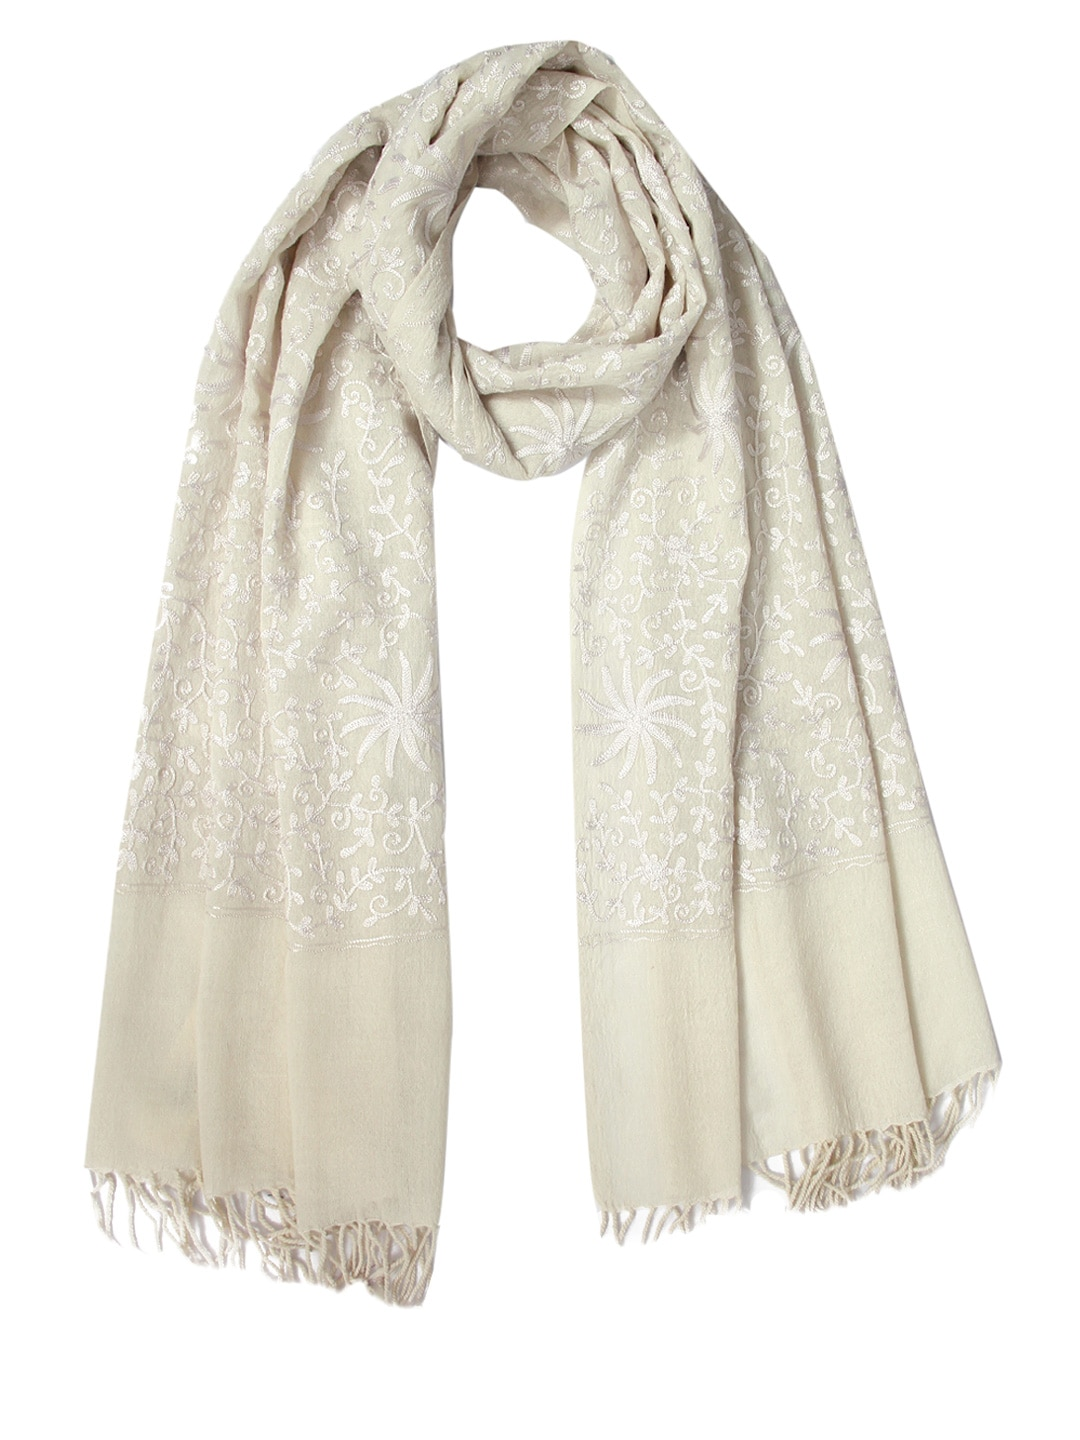 Tassels Tassels Off-White Embroidered Woollen Stole (Multicolor)